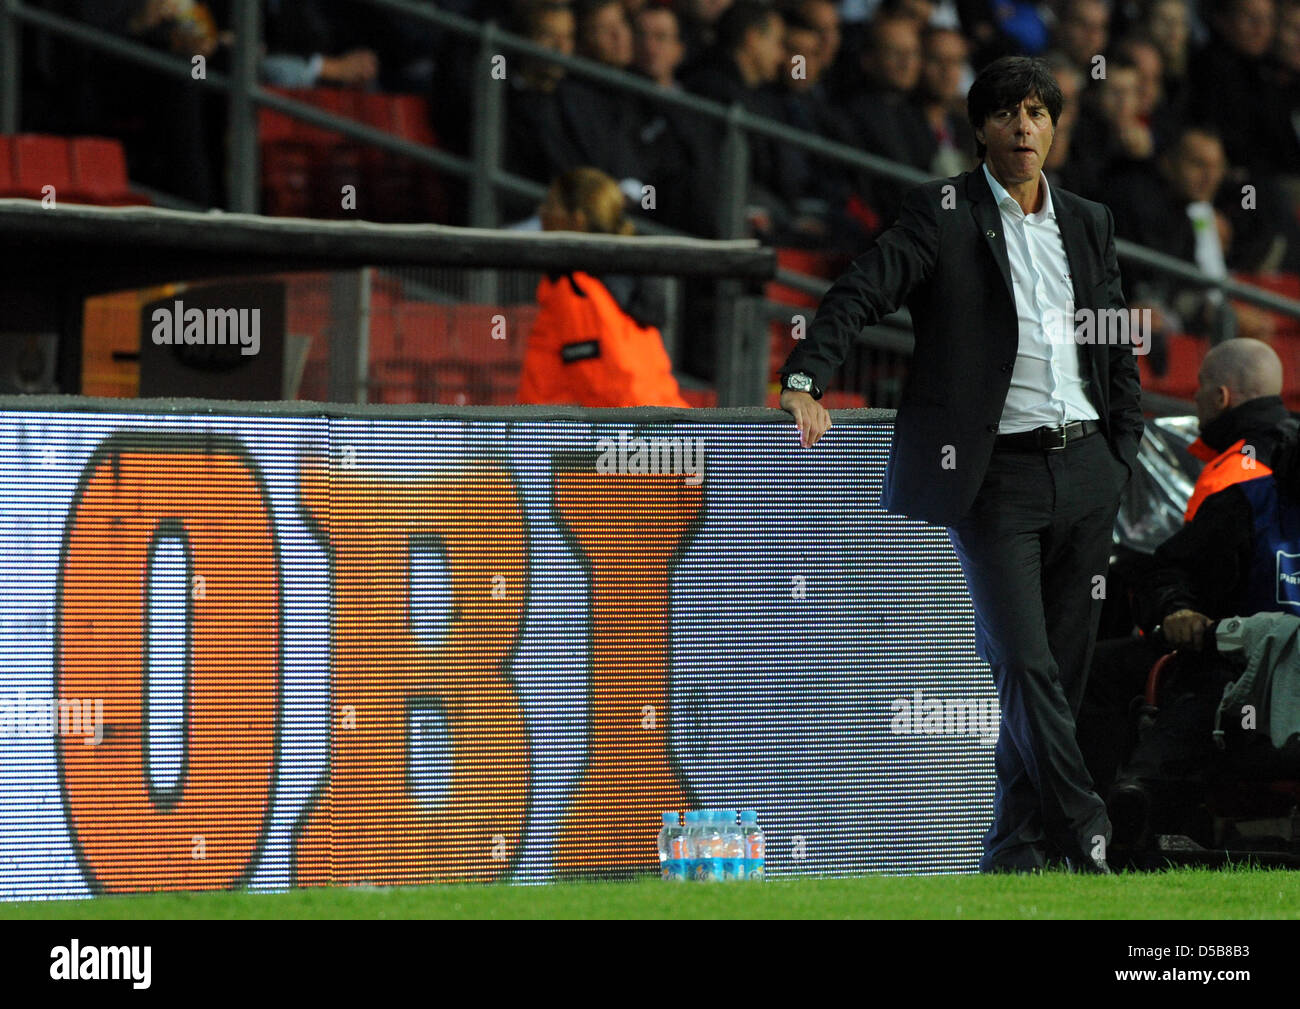 German national trainer Joachim Loew stands on the sidelines of the soccer field during the international soccer - Stock Image